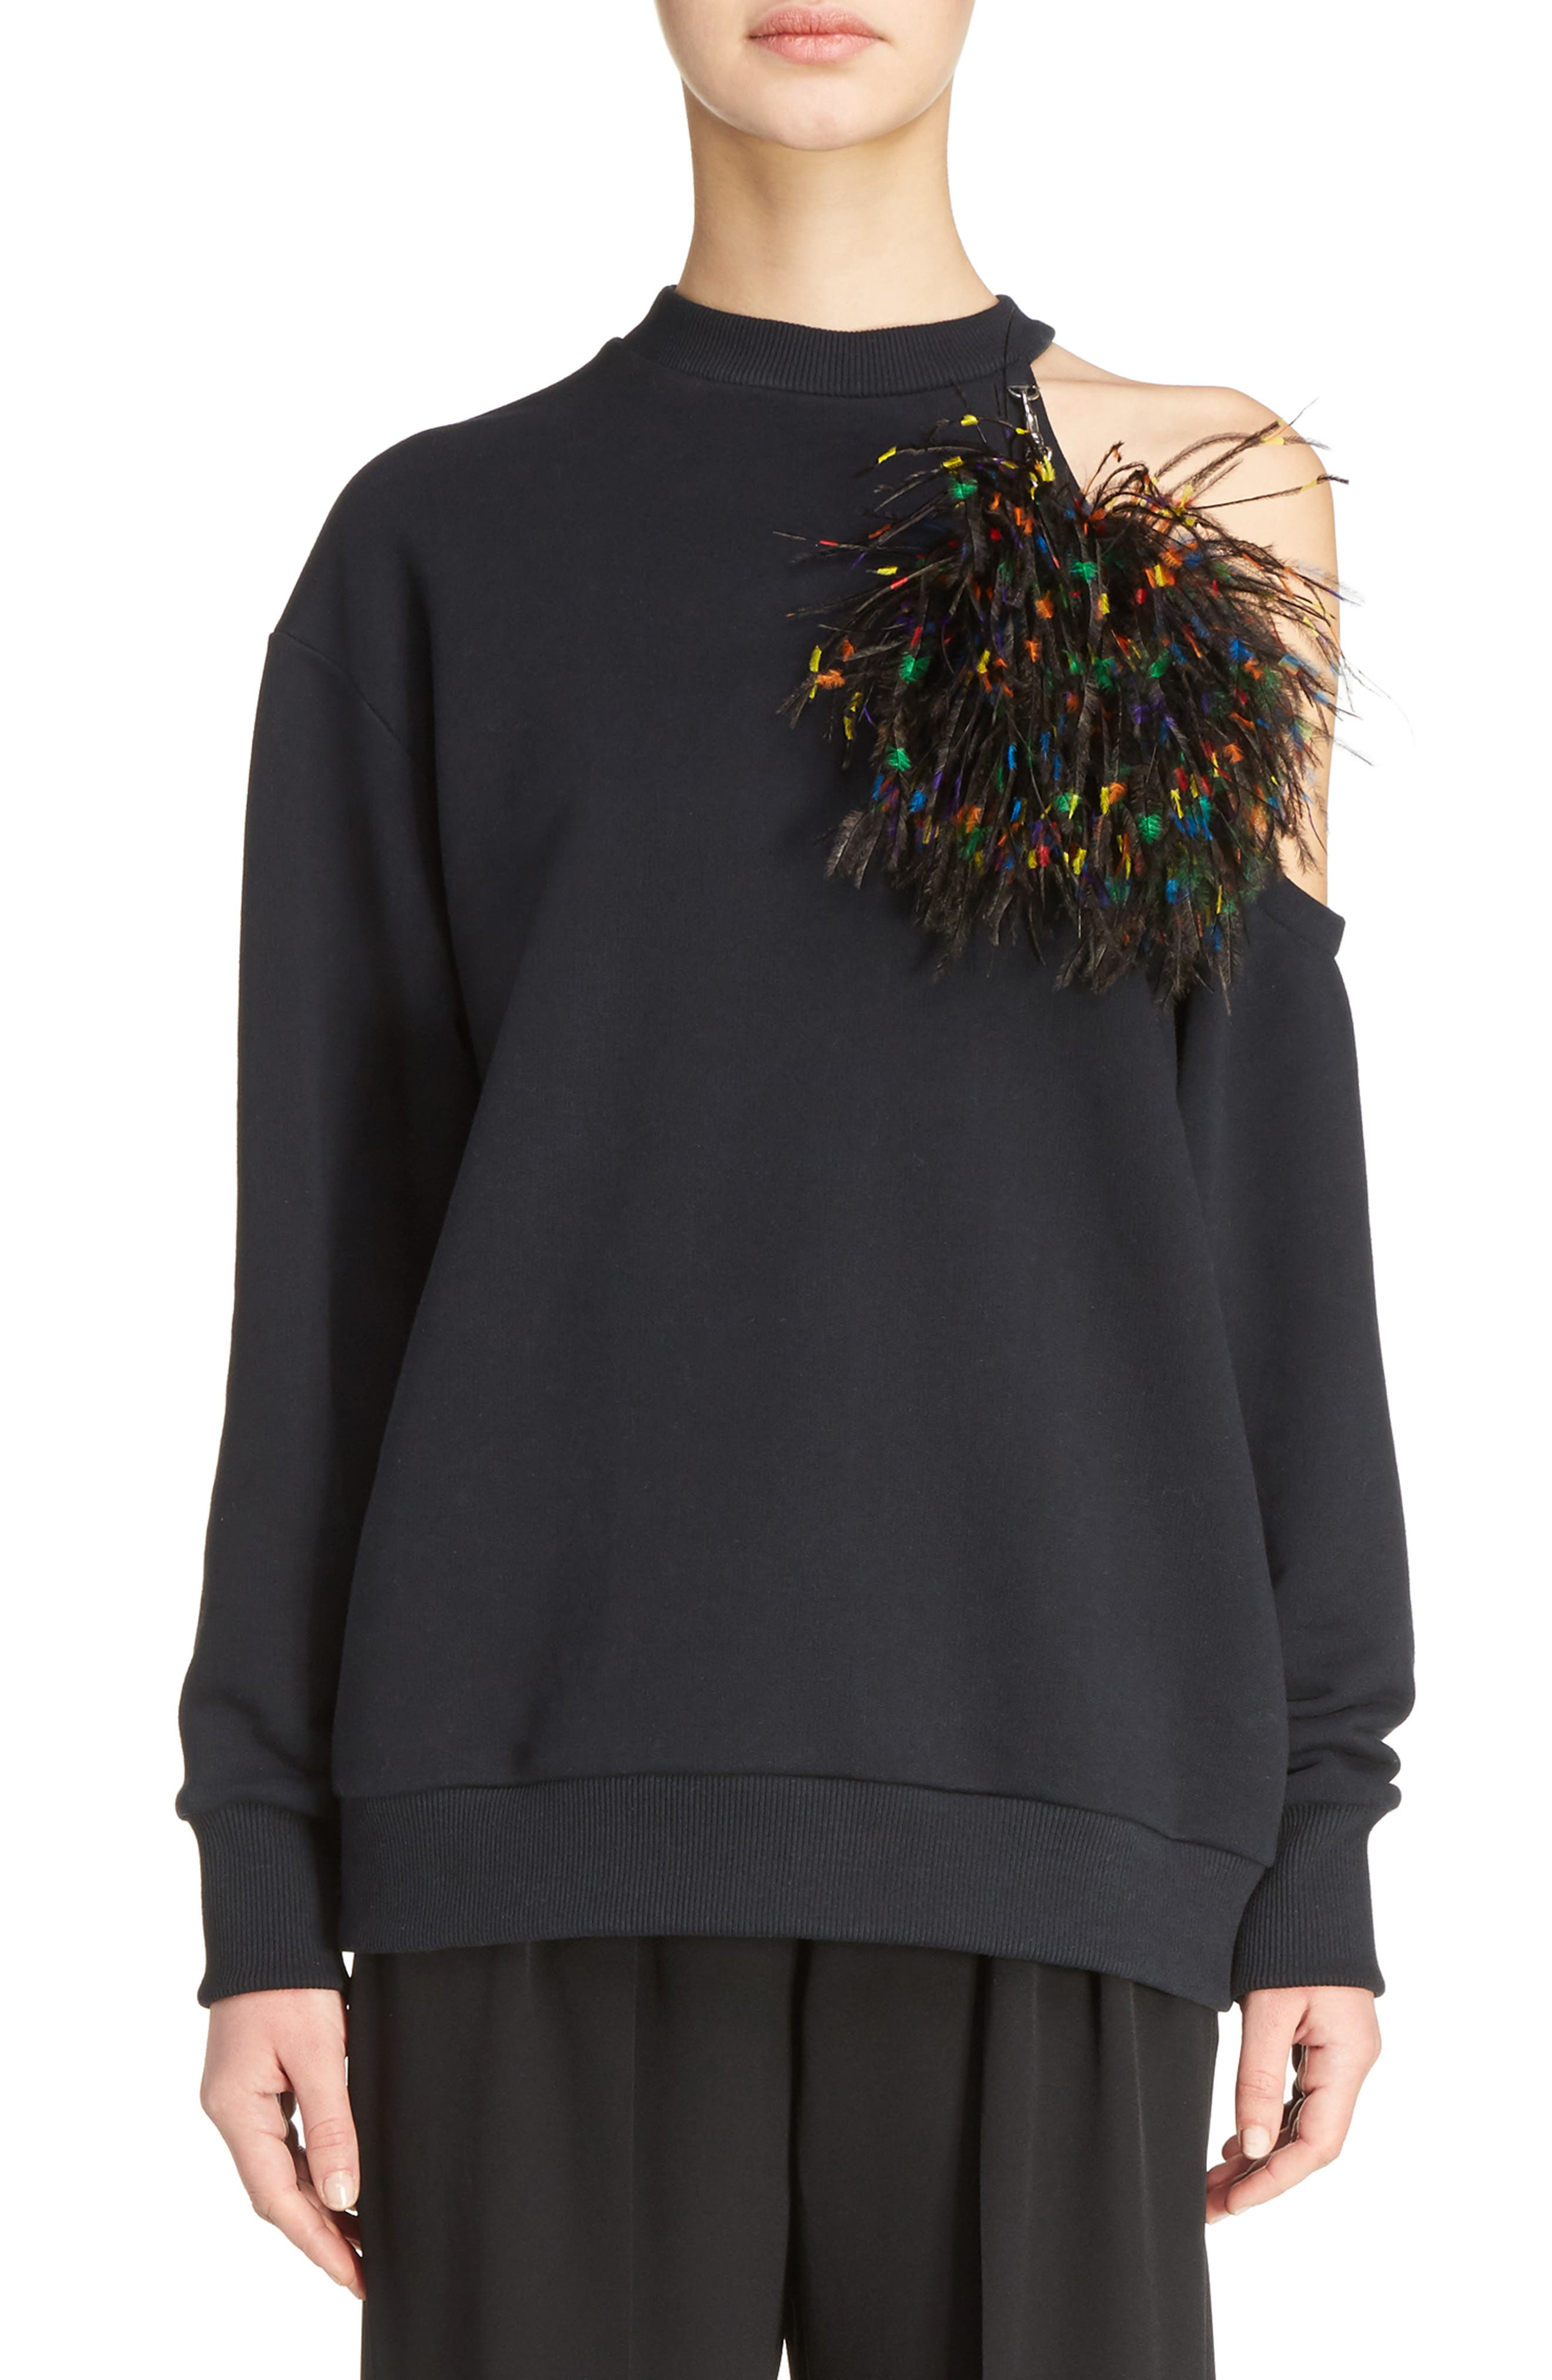 Christopher Kane Pom Pom Cold Shoulder Sweatshirt